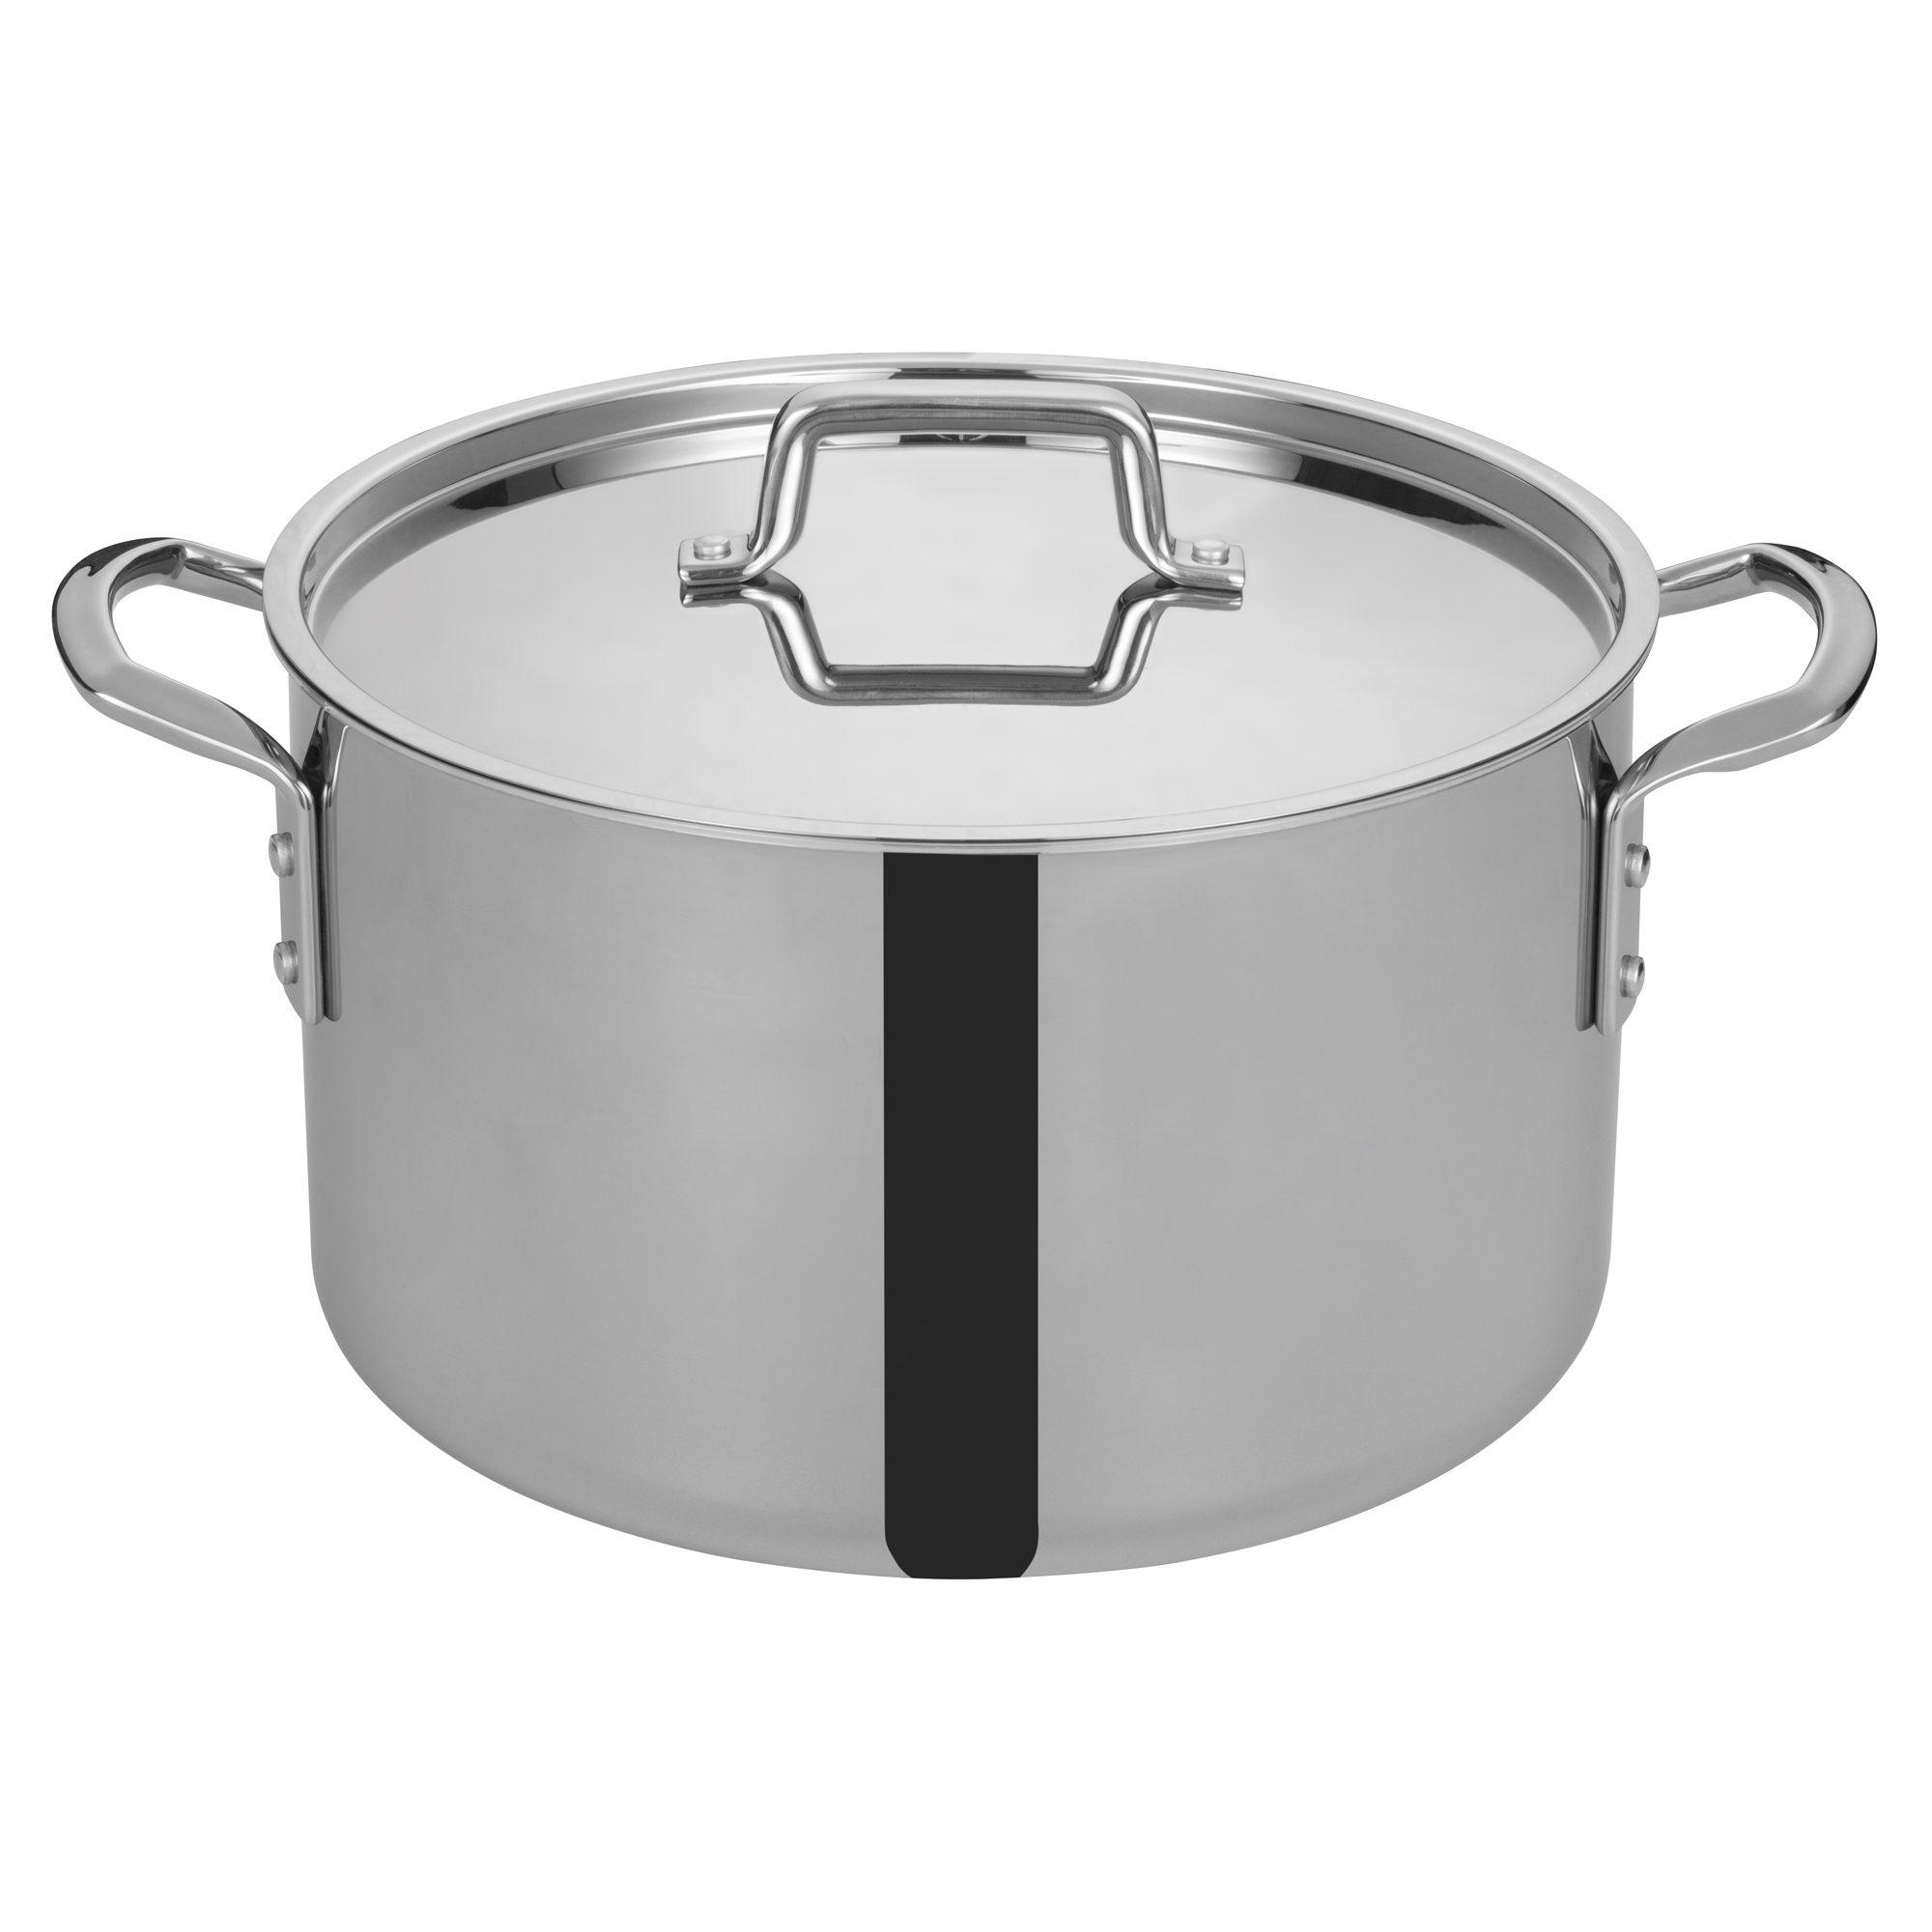 Winco TGSP-16 stock pot